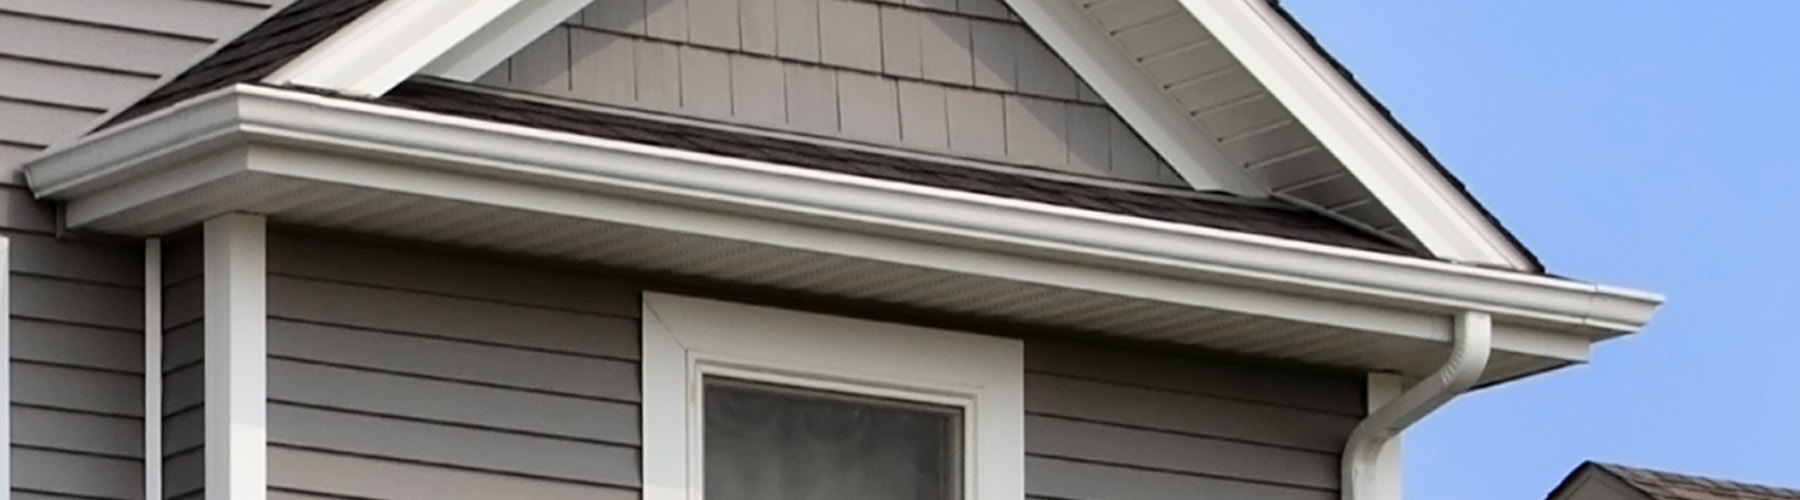 Gutters and Covers